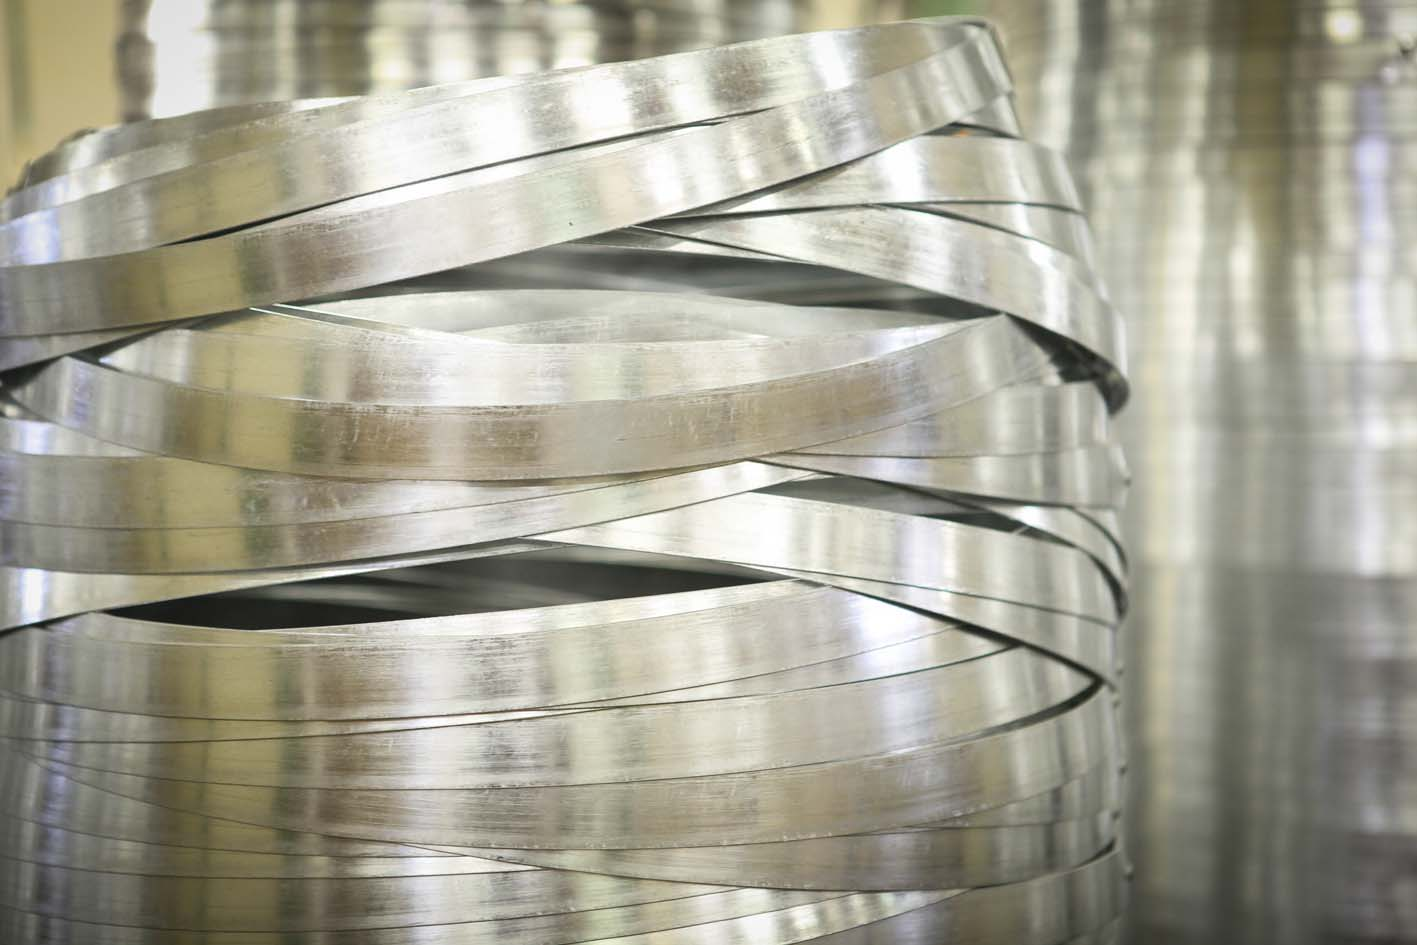 Steel hoops for Brunello di Montalcino 2010 barrels